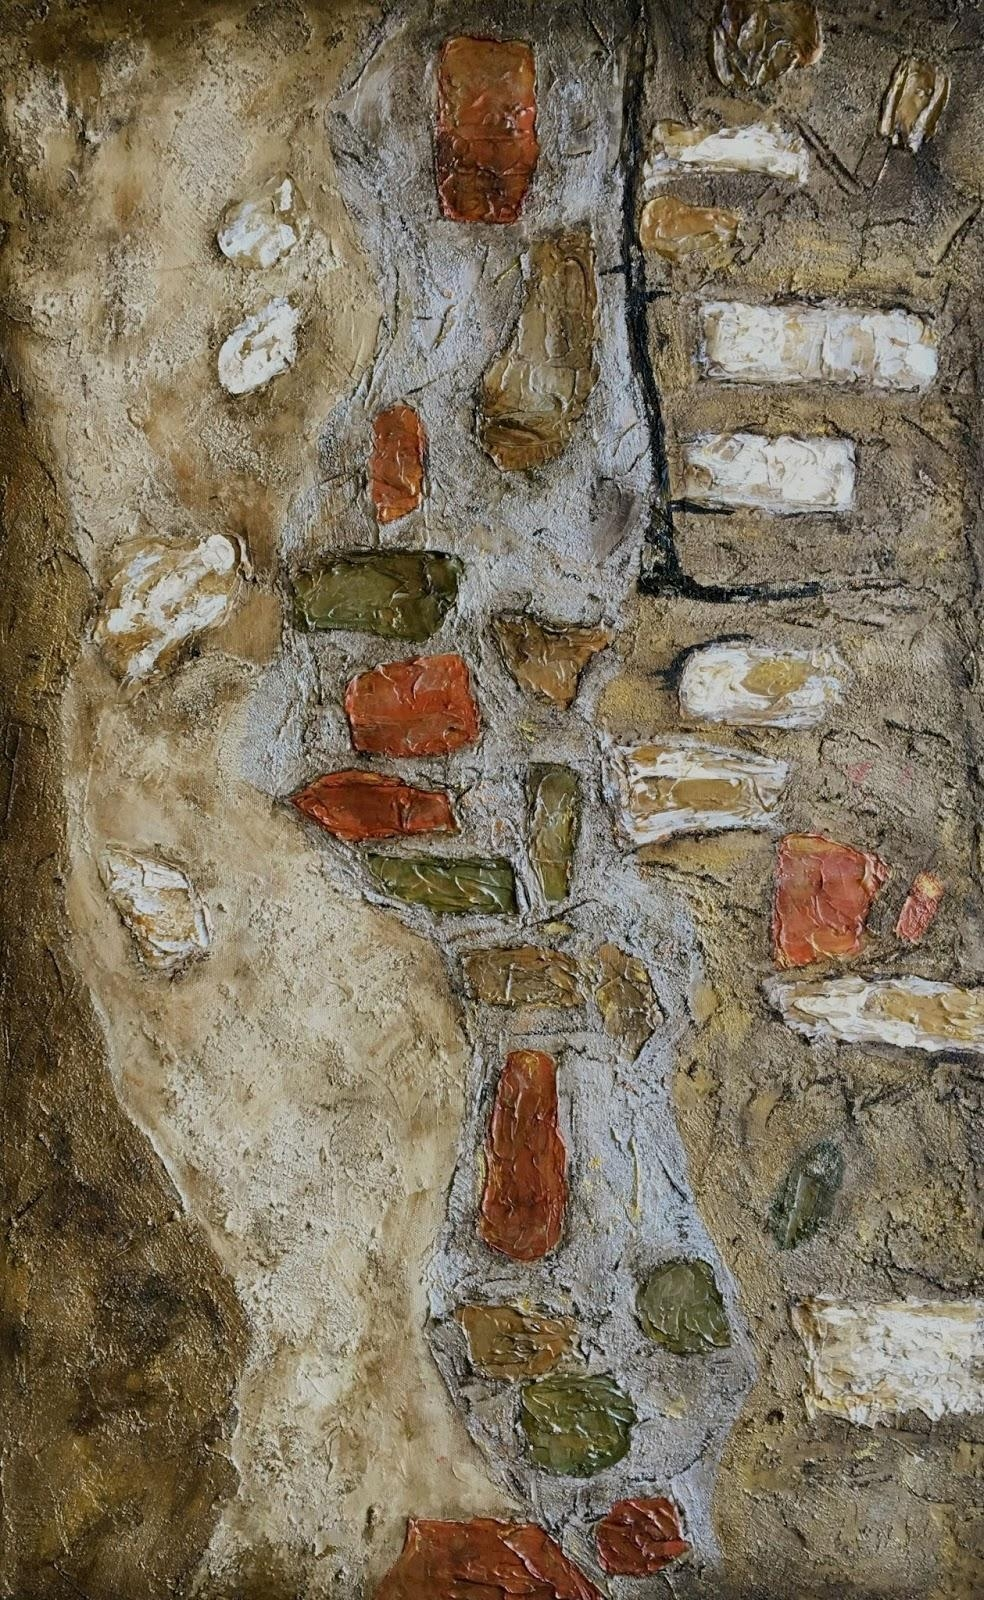 Daily Painters Abstract Gallery: Italian Architecture, Mixed Media Inside Italian Stone Wall Art (View 15 of 20)